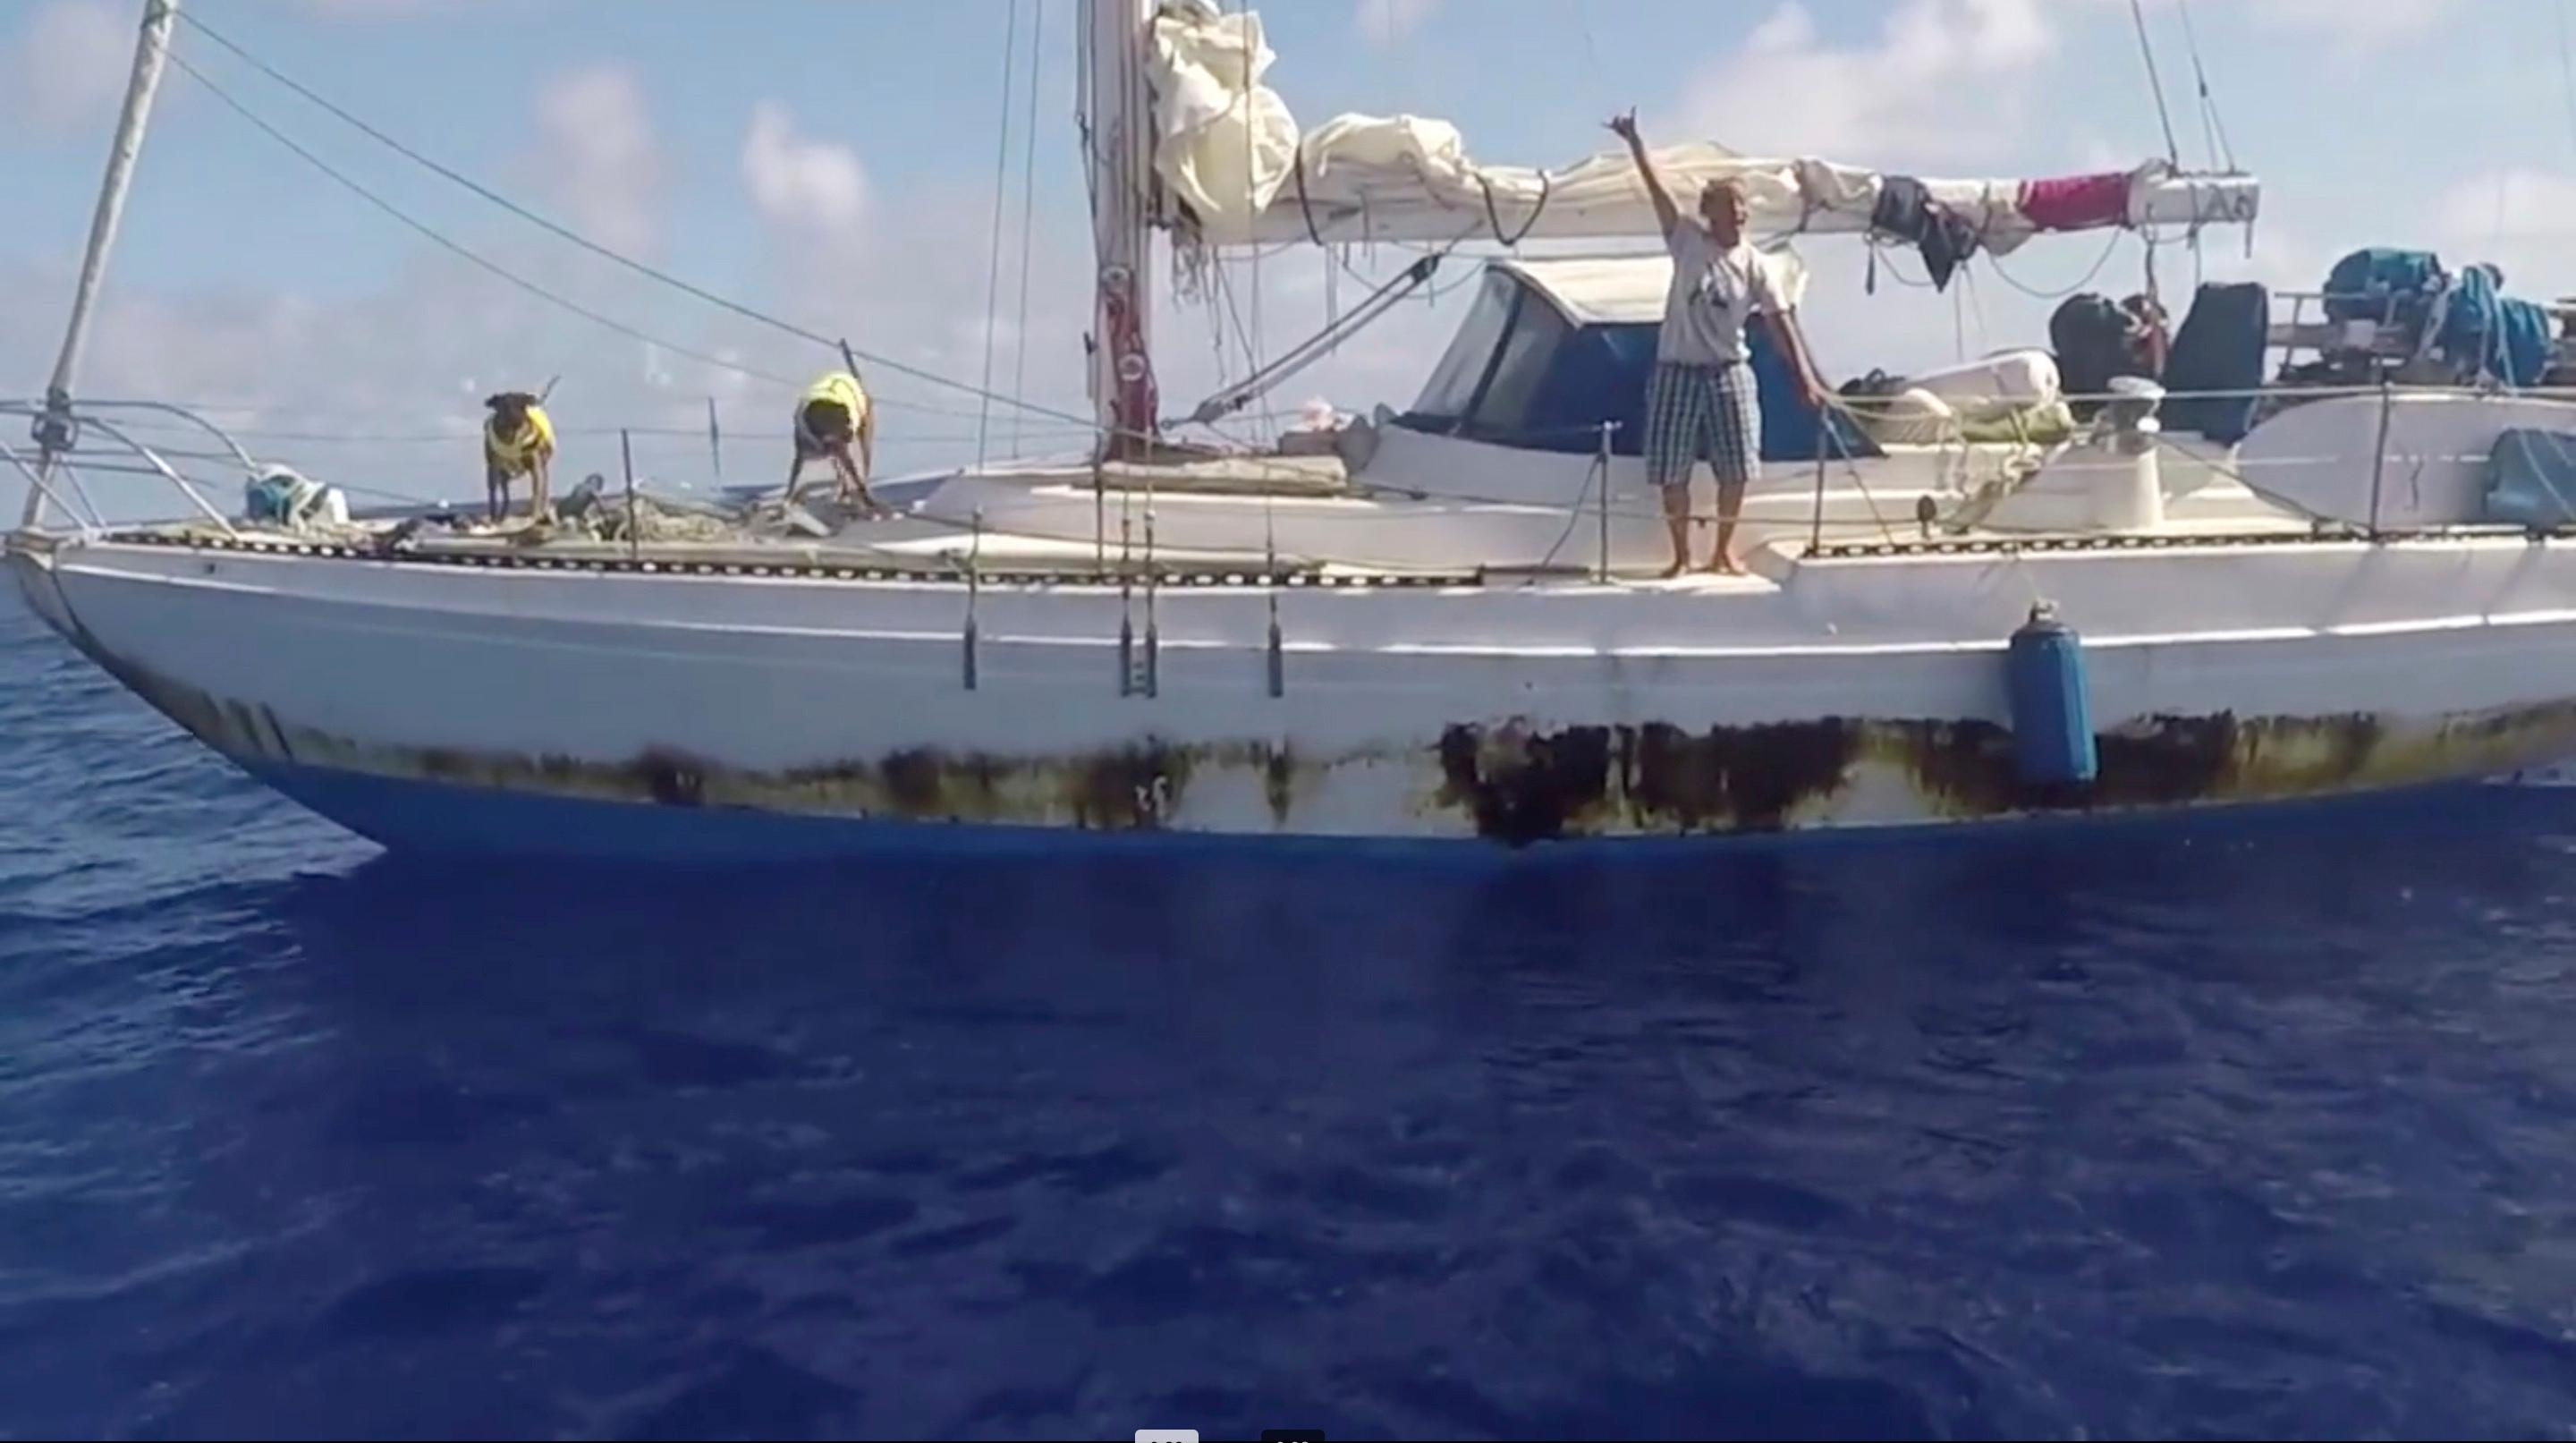 In this Wednesday, Oct. 25, 2017 still image taken from video provided by the U.S. Navy, Jennifer Appel, of Honolulu, holds up a shaka sign as rescuers approach her crippled sailboat, the Sea Nymph. (U.S. Navy via AP)<p></p>